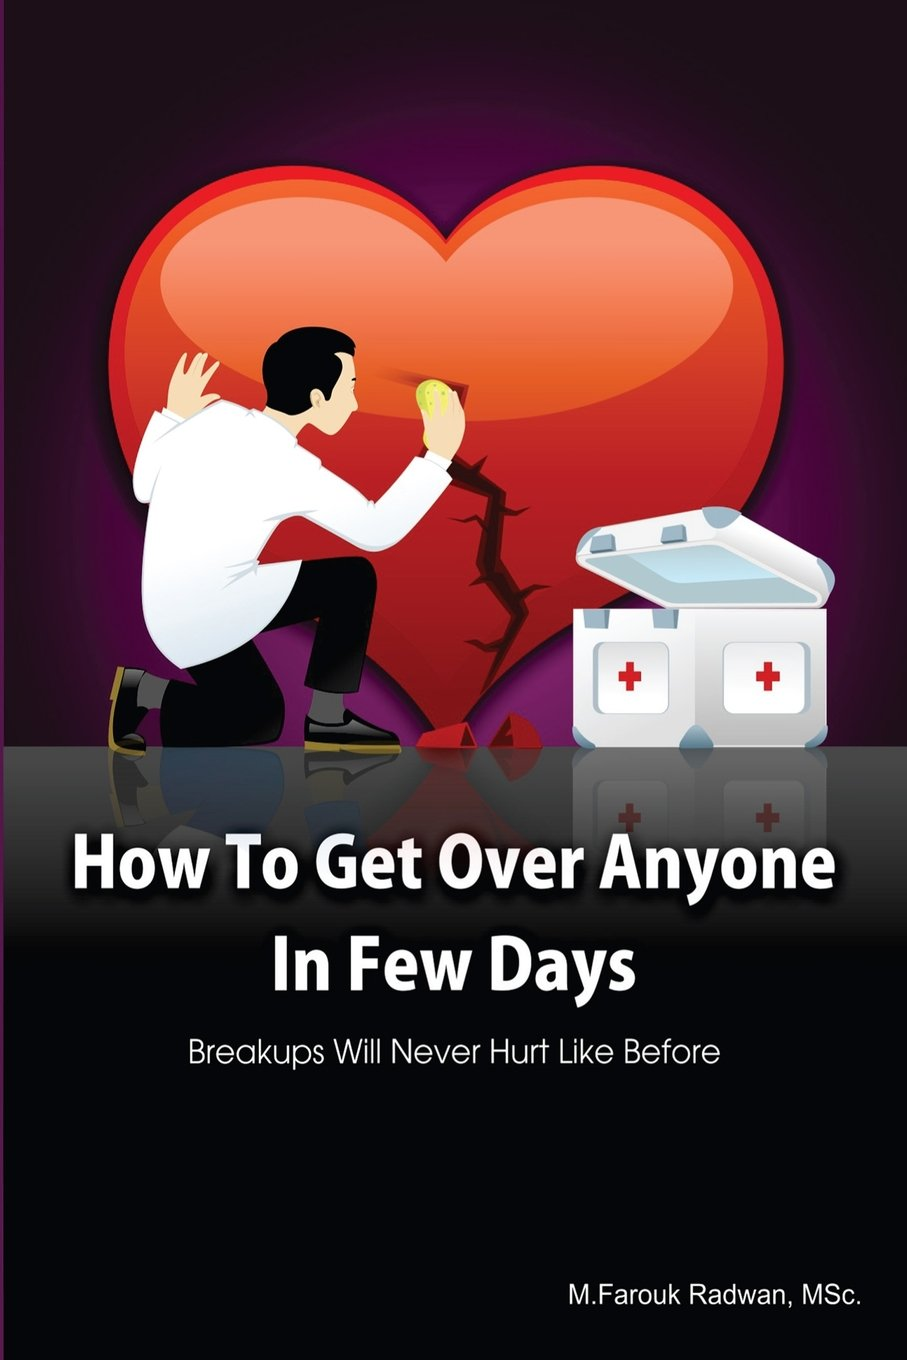 How To Get Over Anyone In Few Days (paperback): Breakups Will Never Hurt  Like Before: Volume 1: Amazon: Mfarouk Radwan: 9781477683750: Books